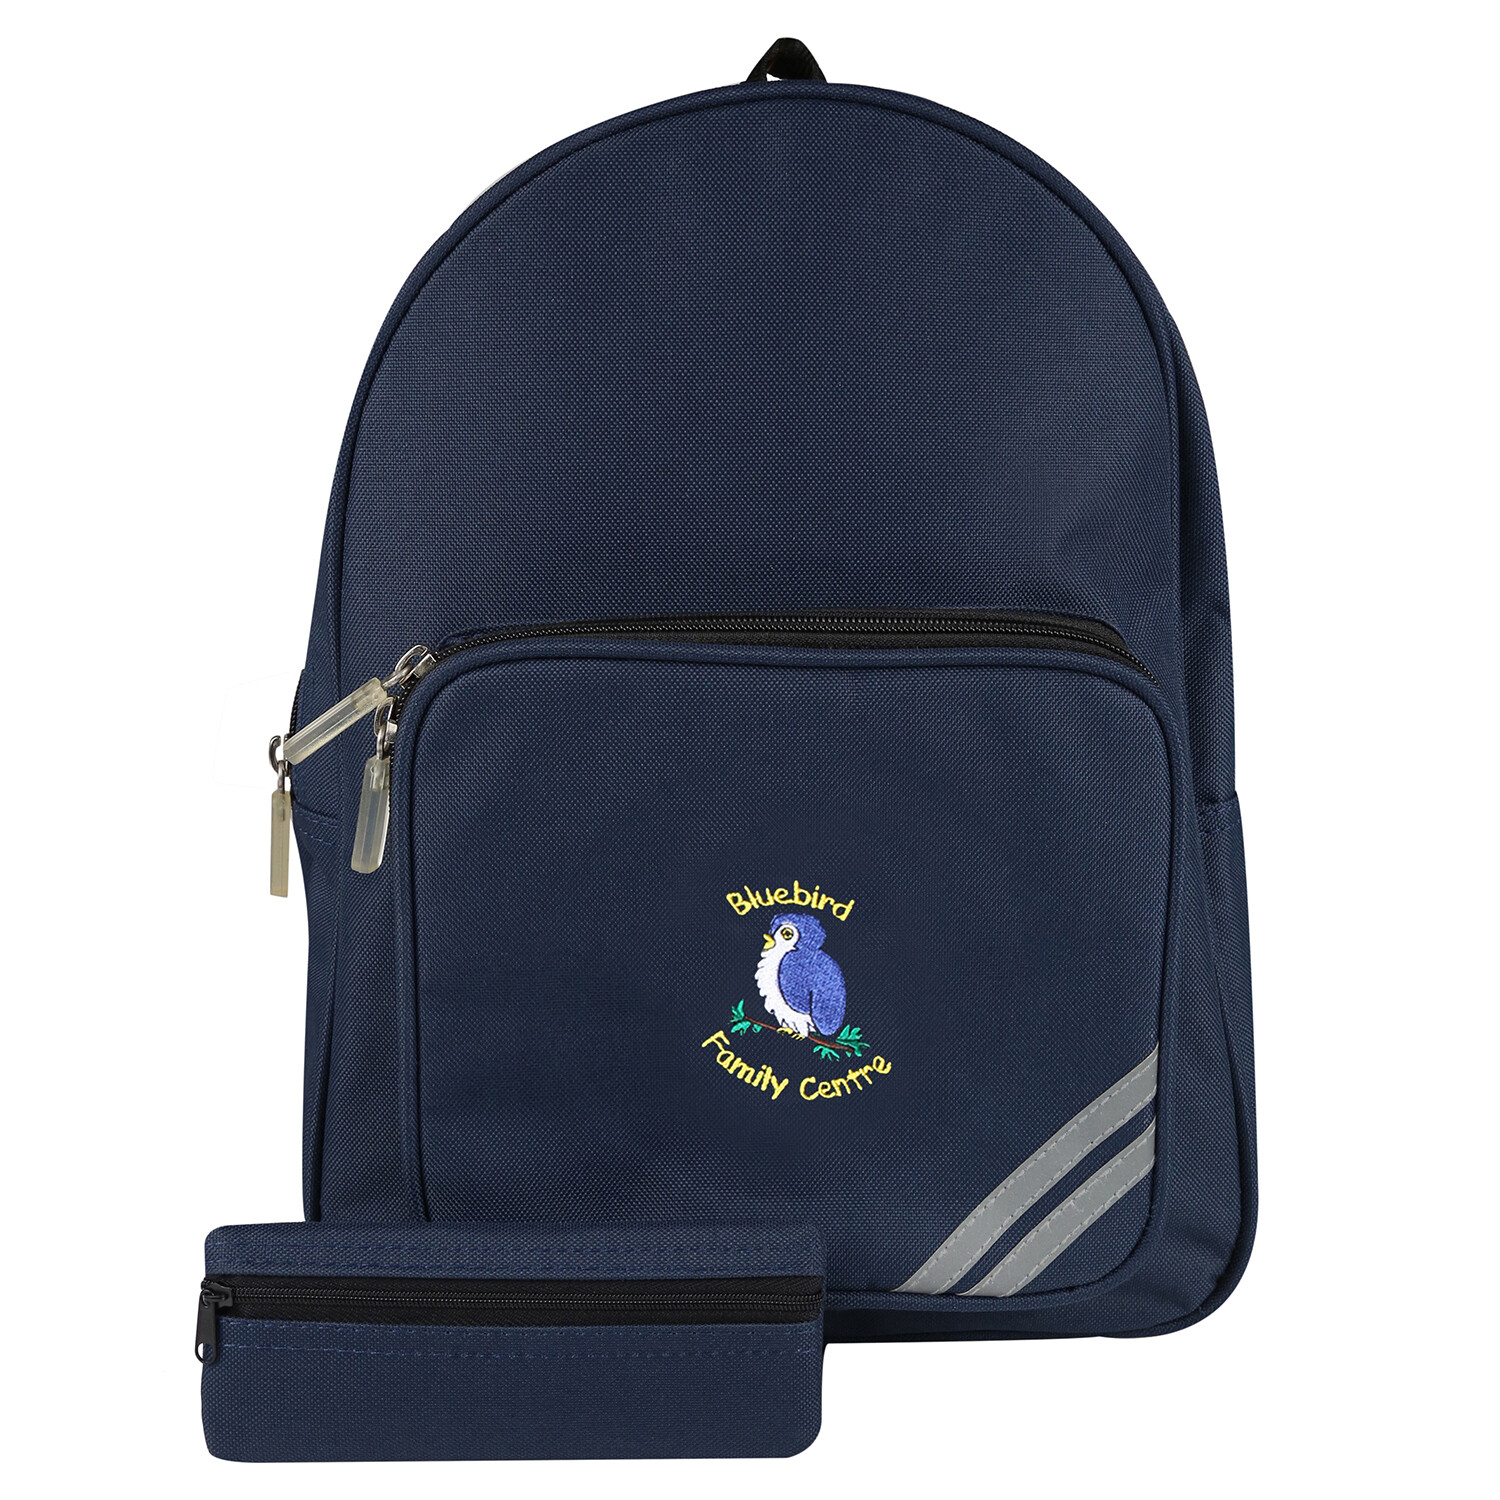 Bluebird Family Centre Backpack